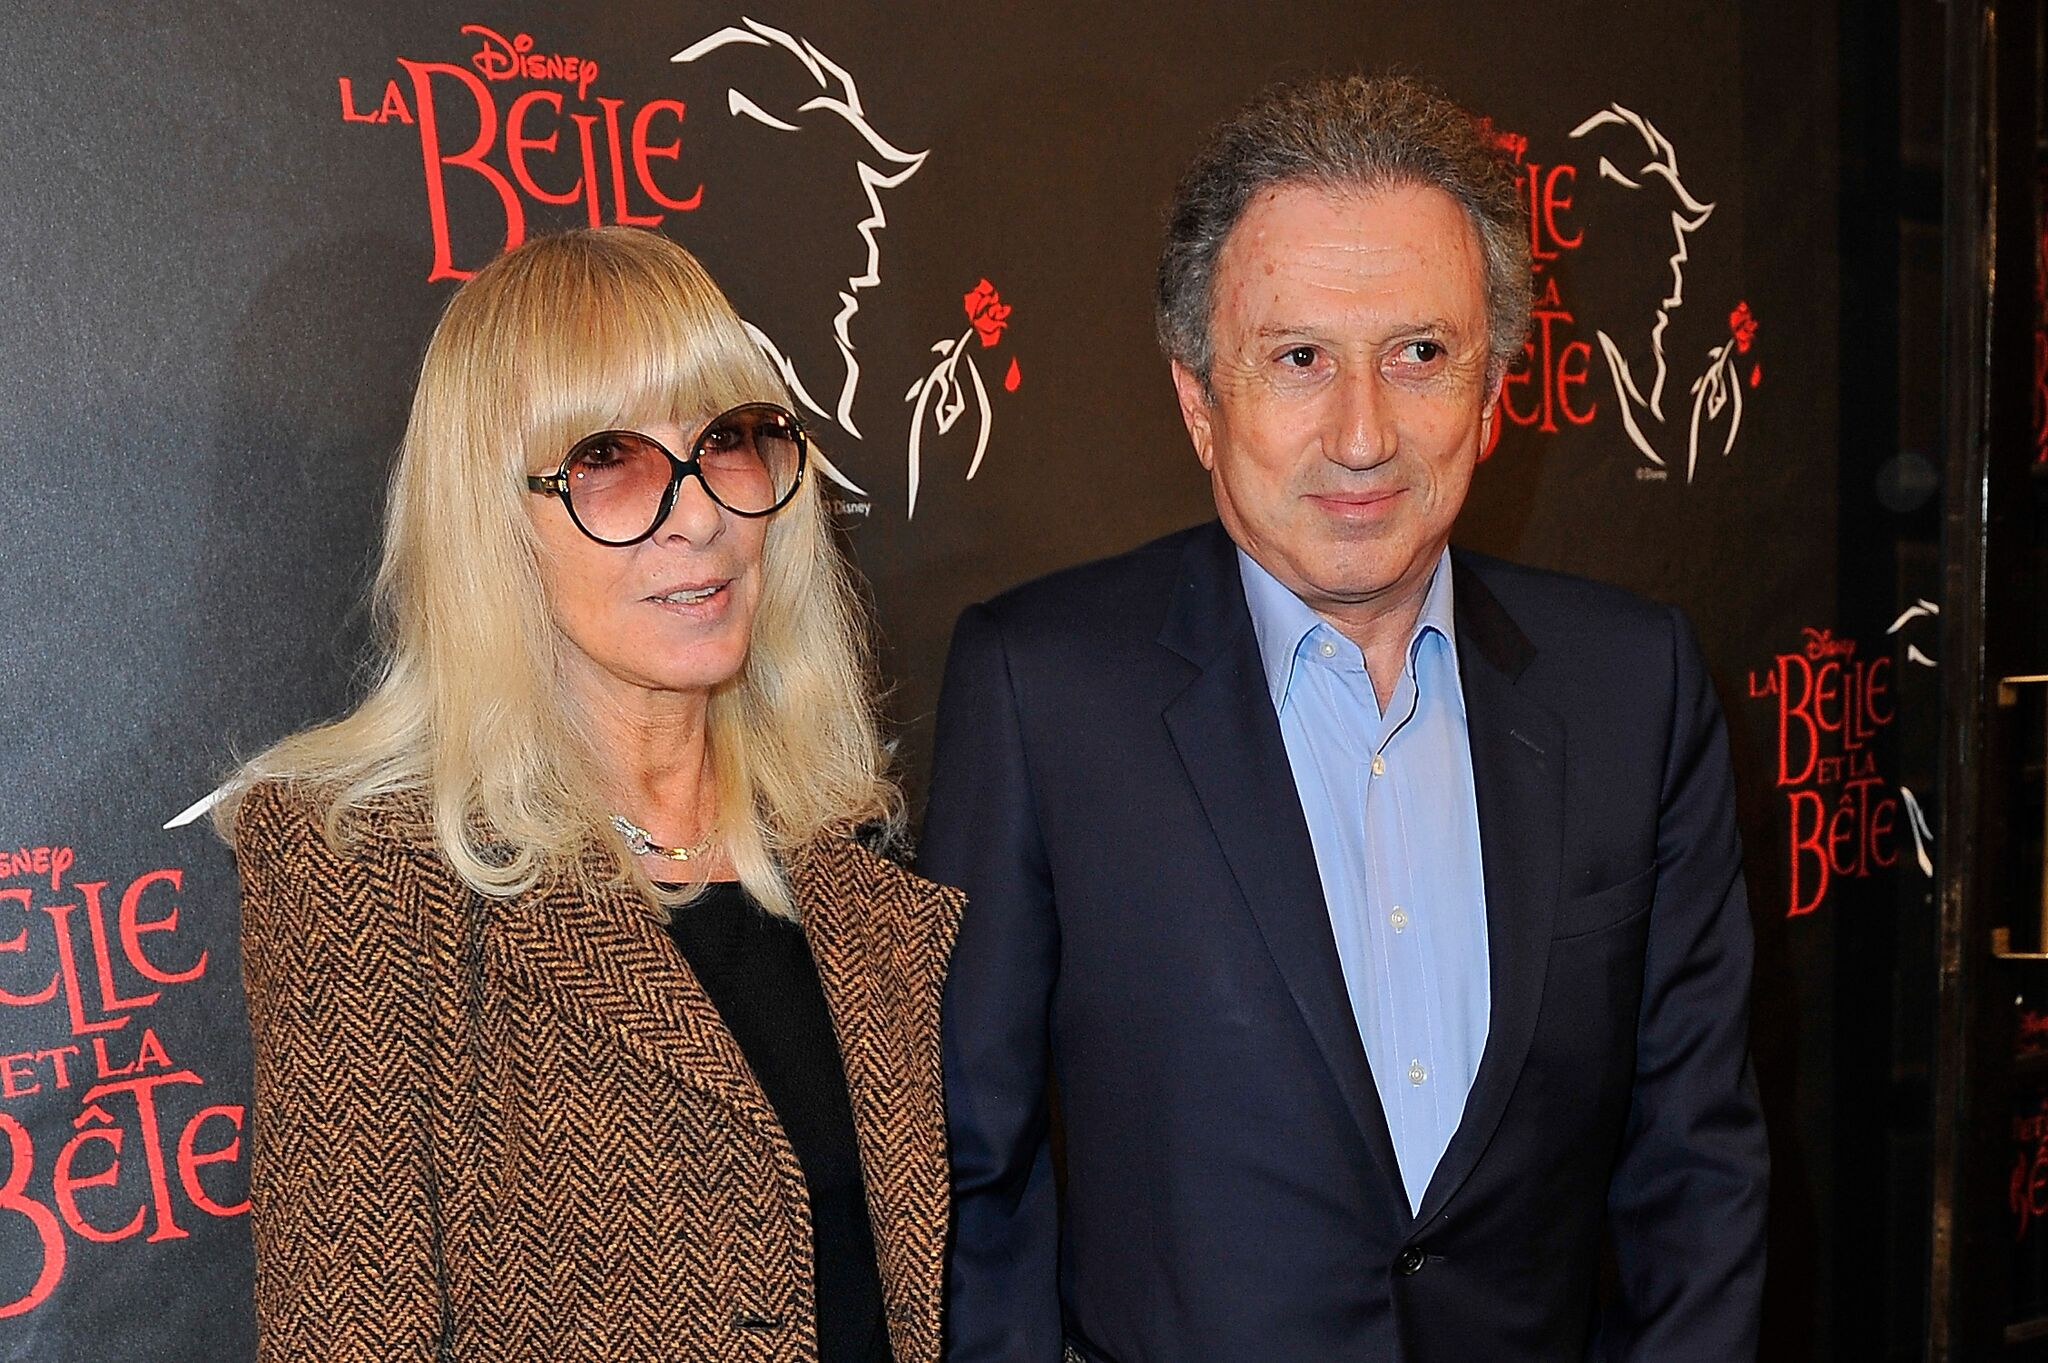 Michel Drucker en compagnie de sa femme l Source: Getty Images